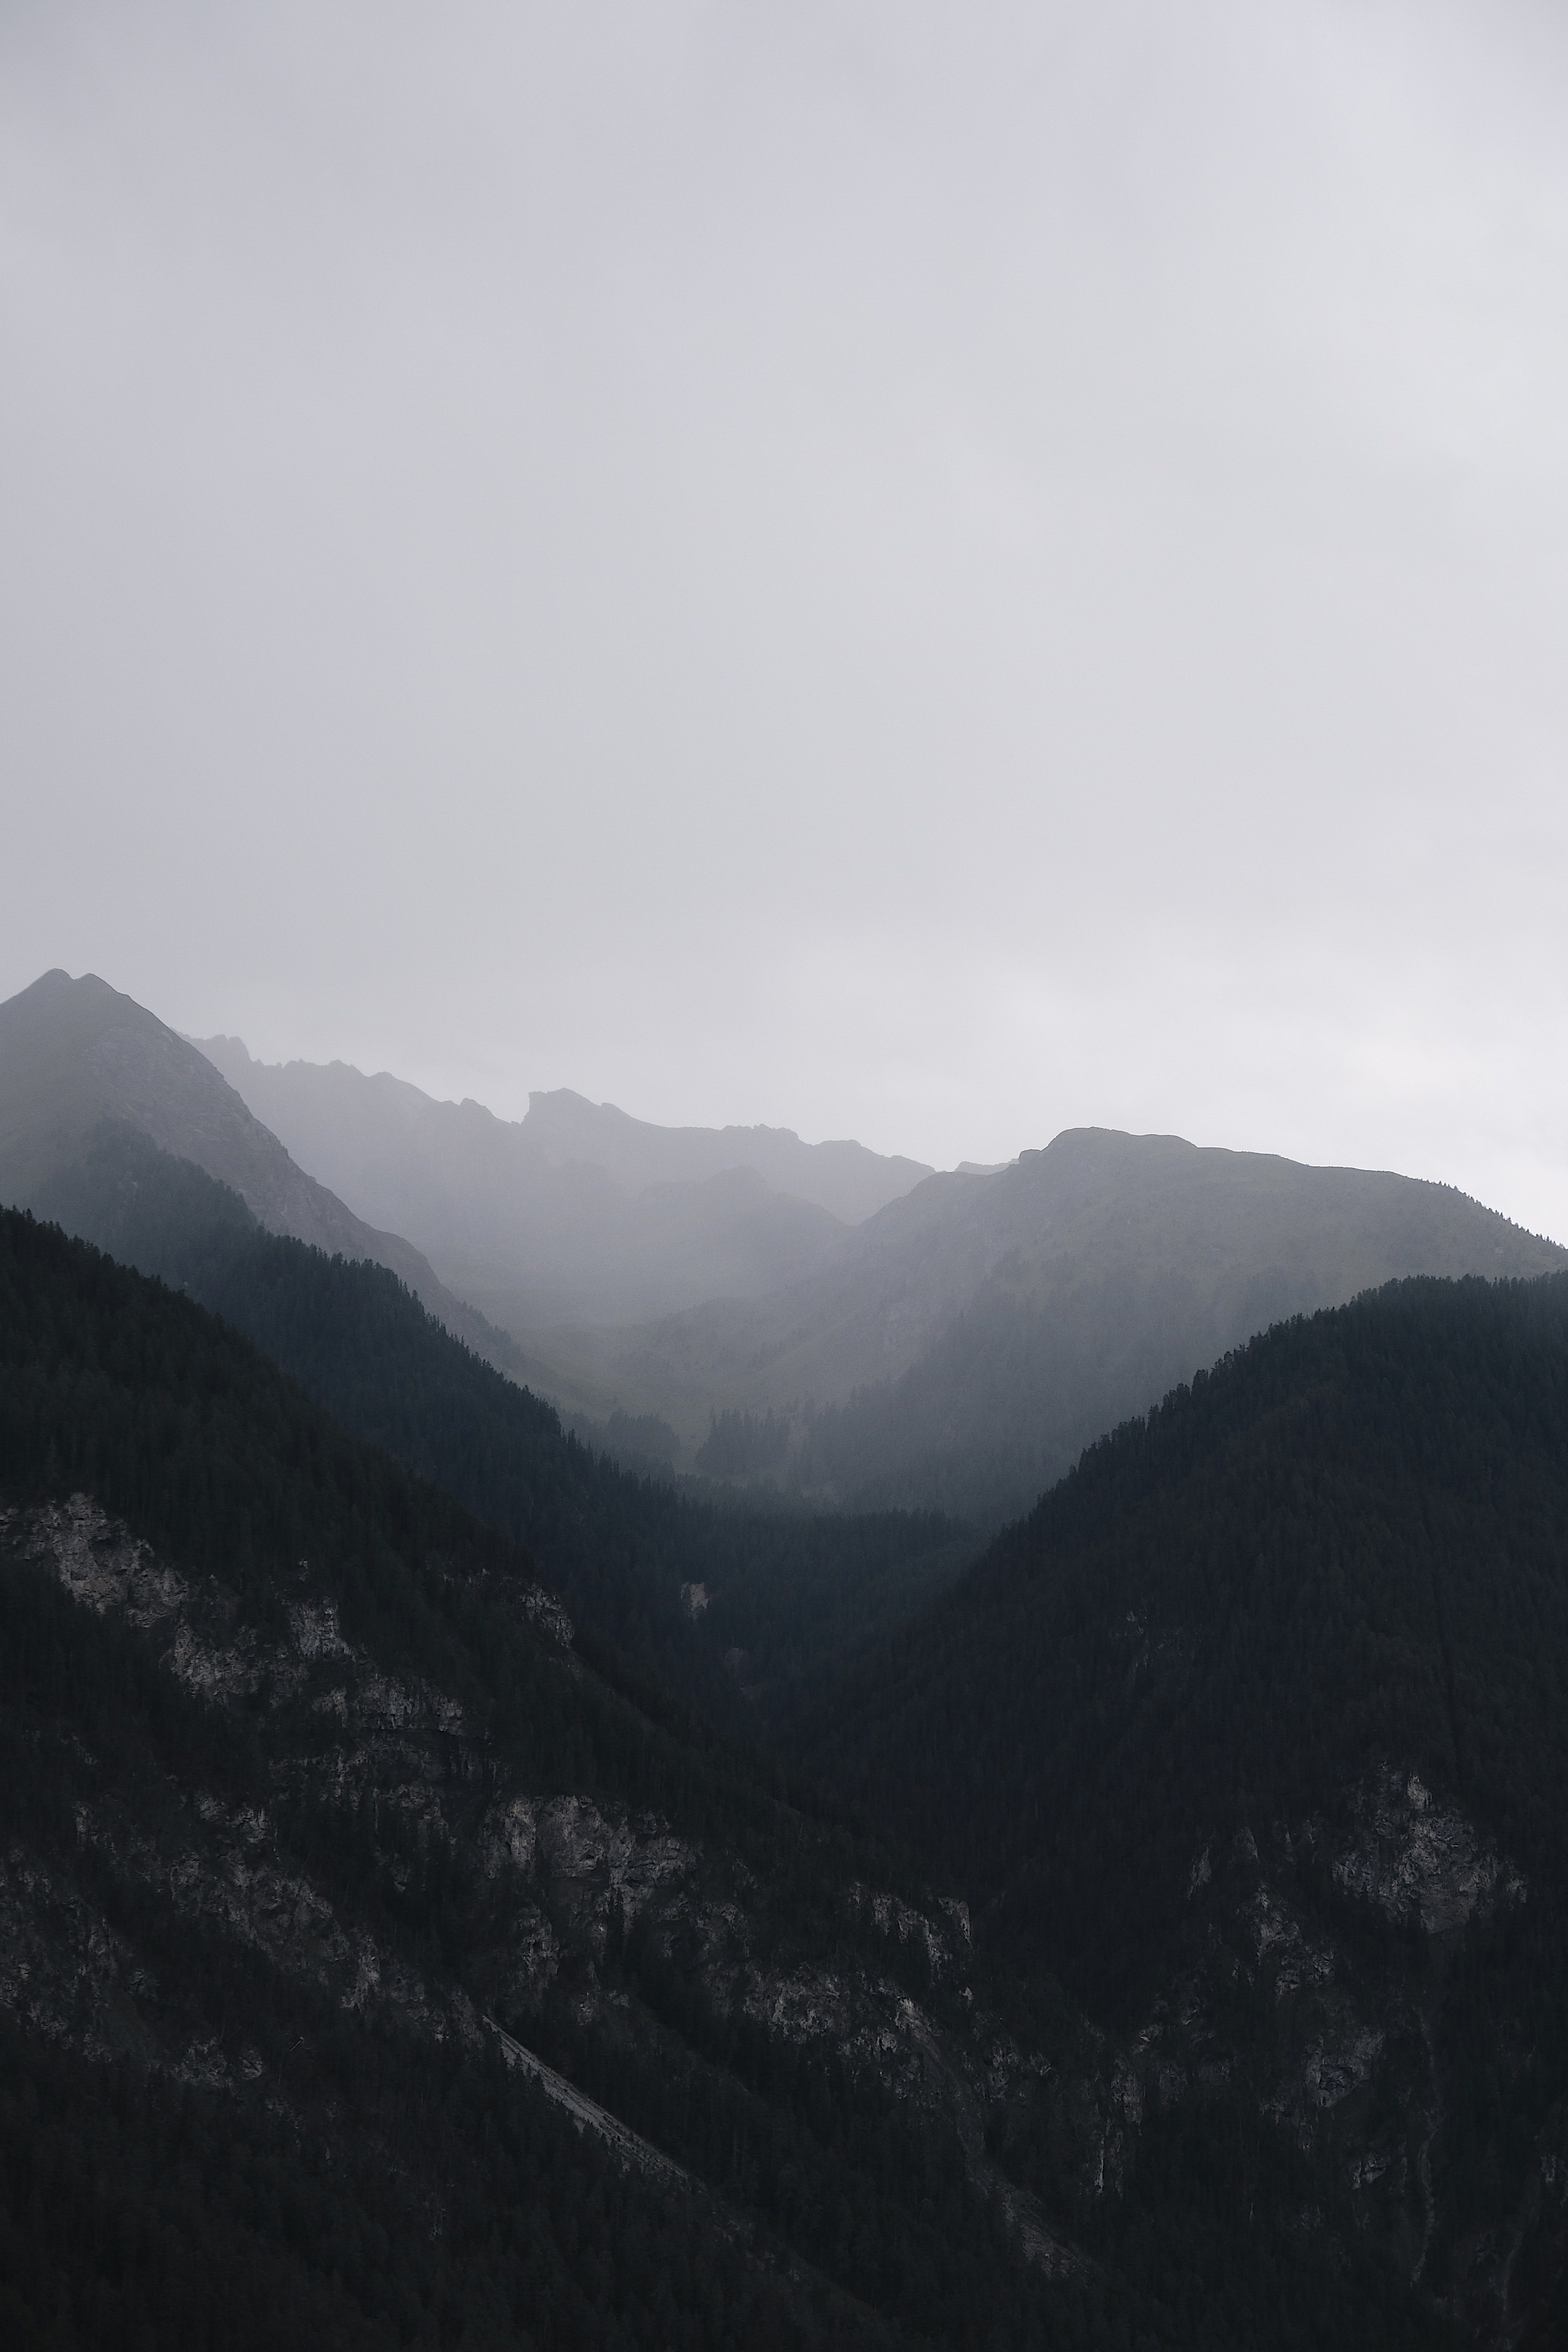 mountain range under cloudy sky during daytime